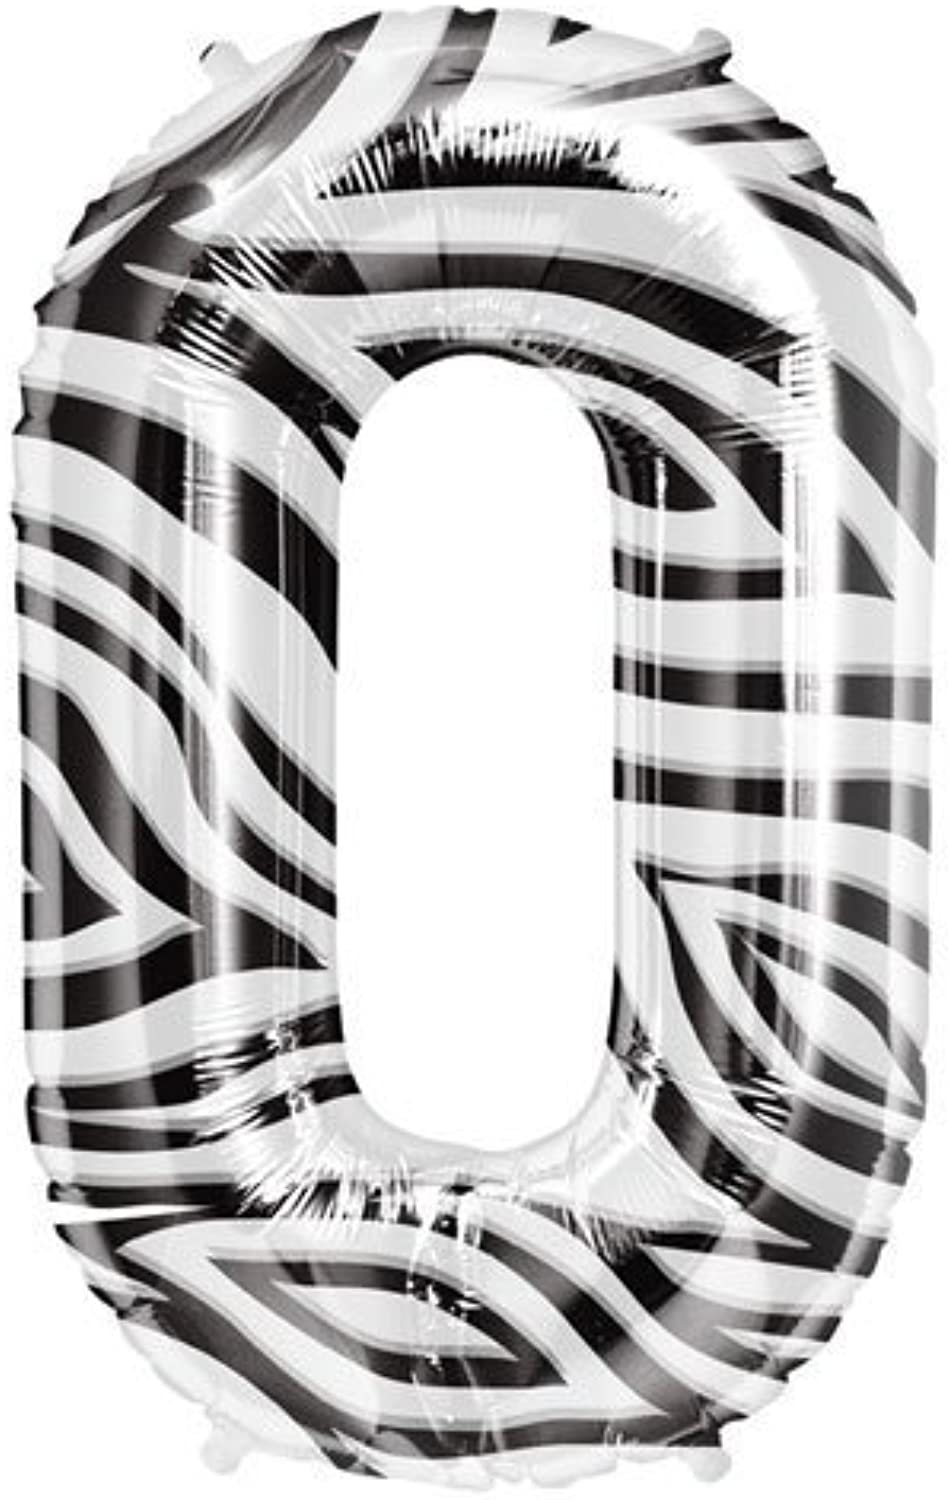 Single Source Party Supplies  34 Zebra Number 0 Mylar Foil Balloon by Single Source Party Supplies